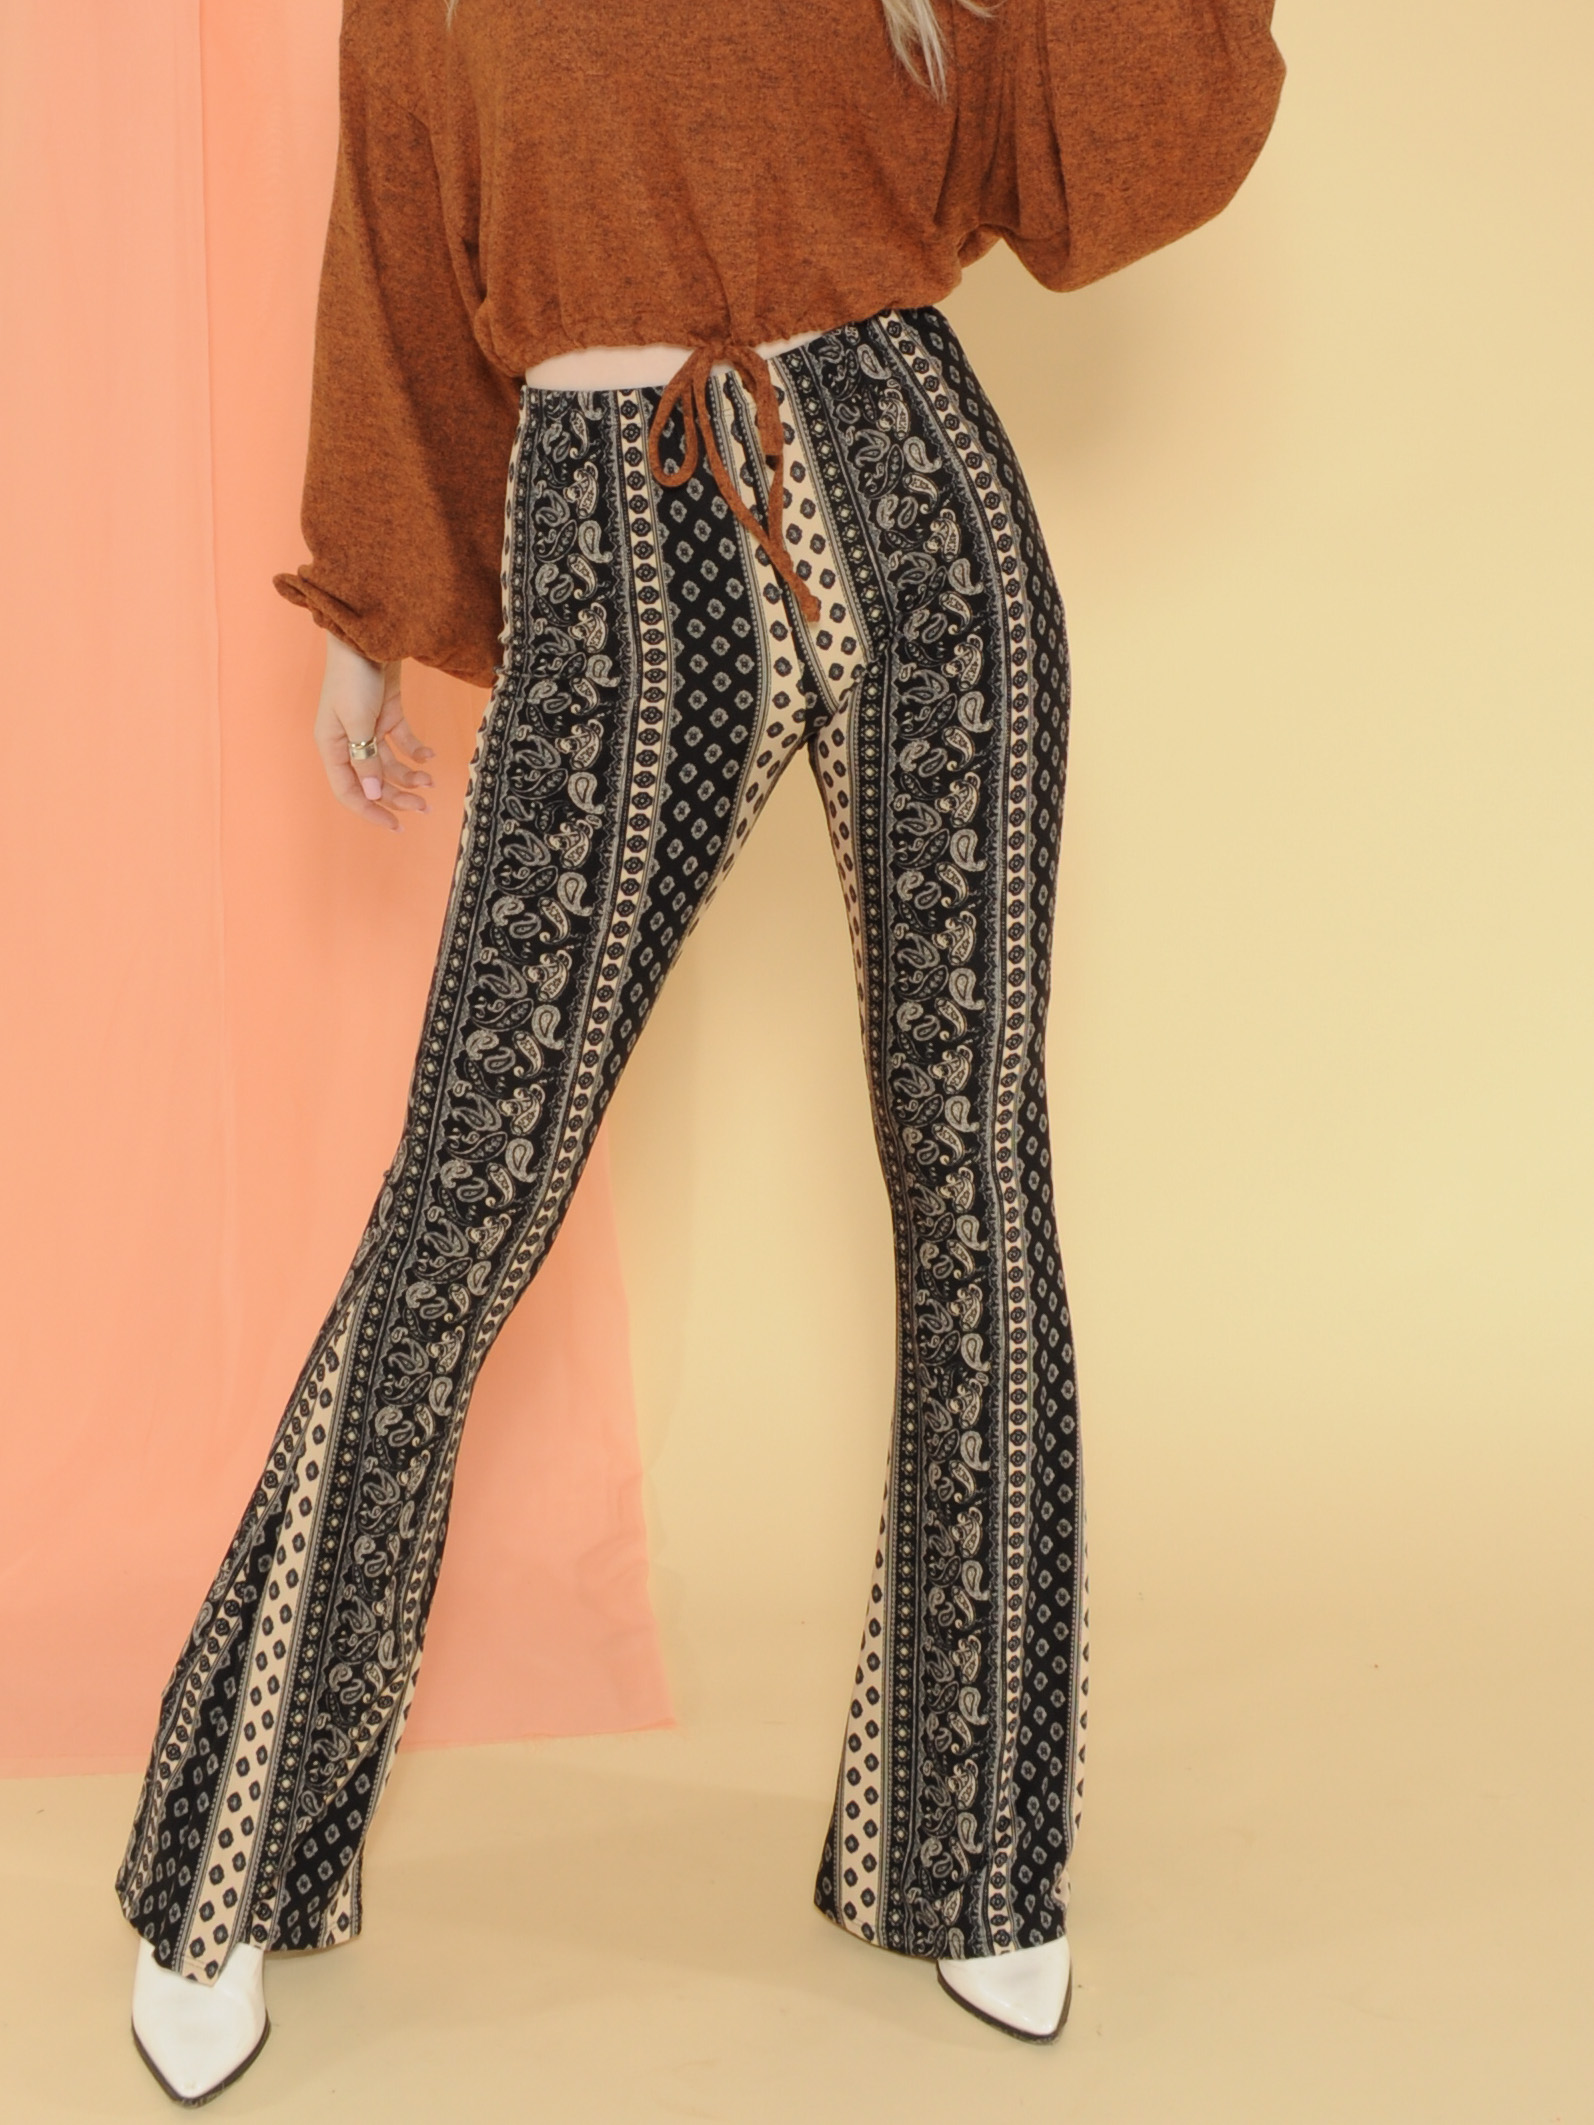 Barrymore Bell Bottoms